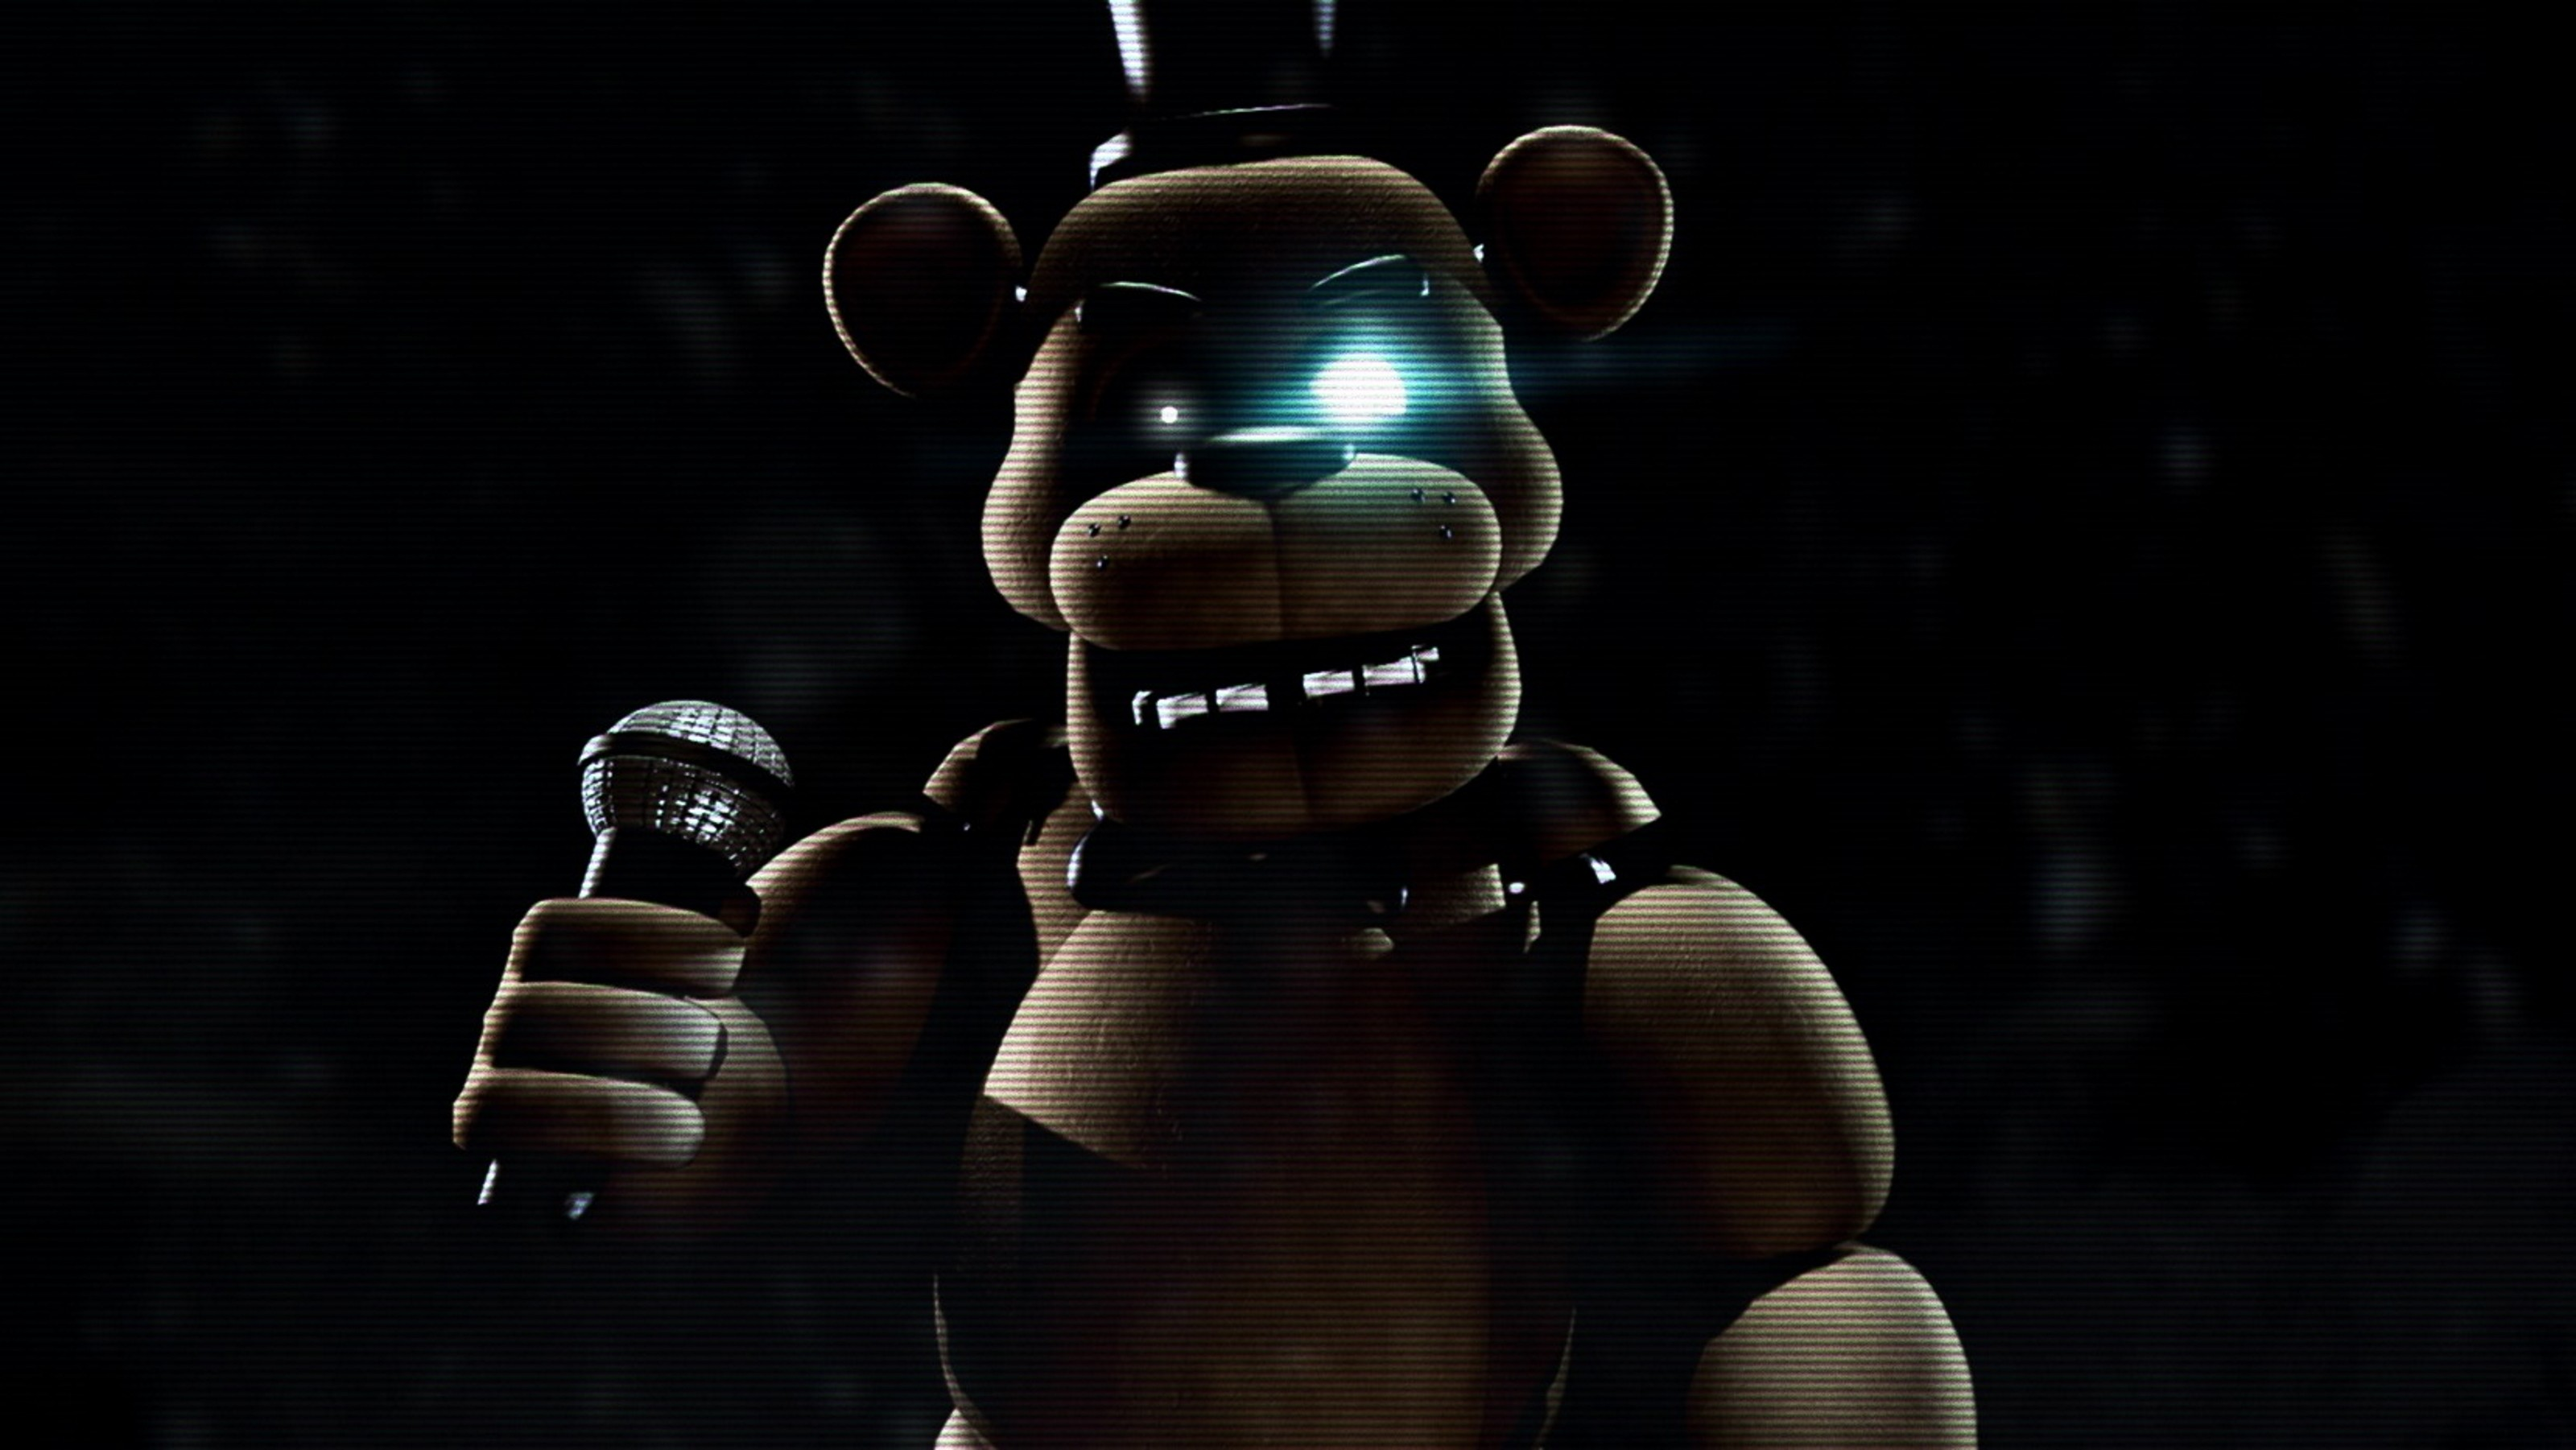 2048 Fnaf Fnaf Wallpapers Hd 71 Images